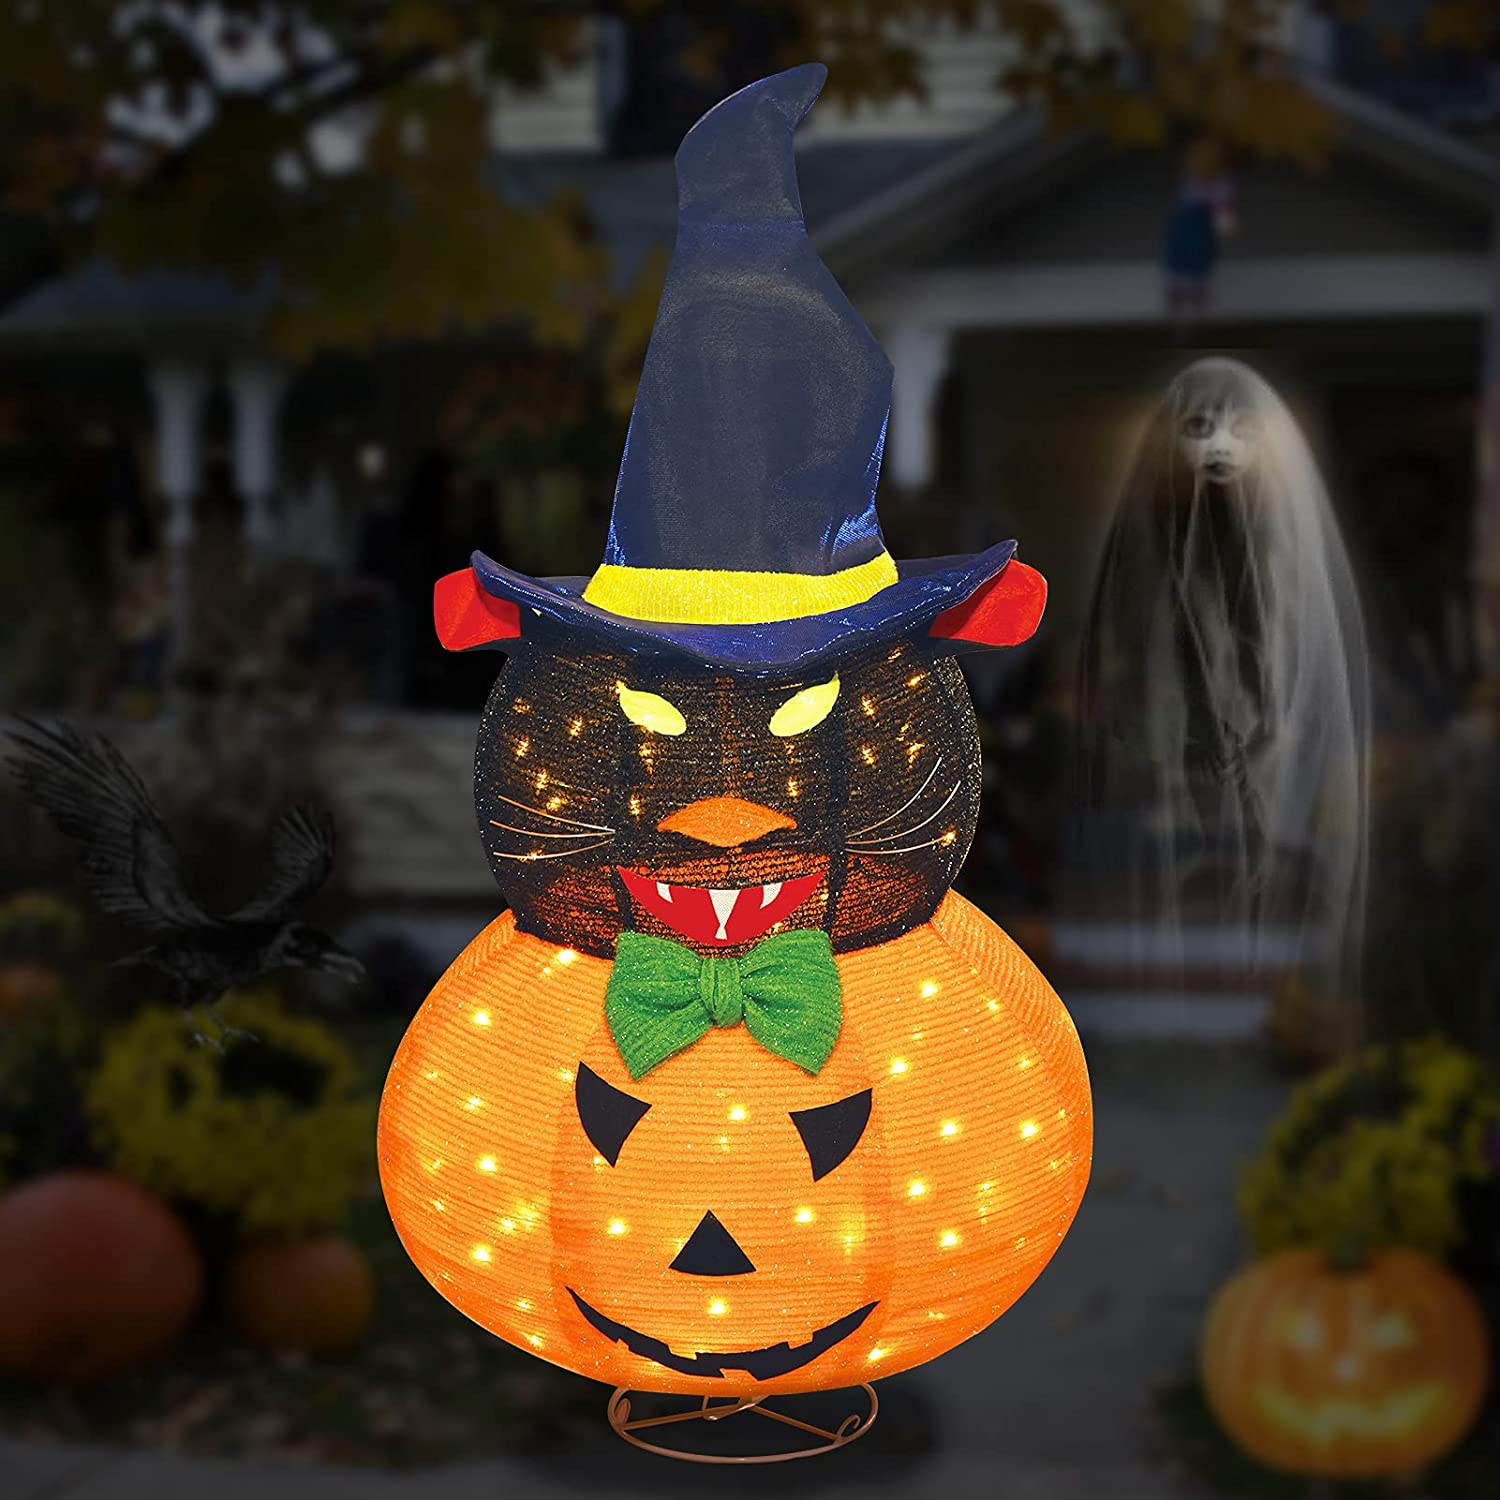 FLAGLY Lighted Halloween Decoration Pre-lit Max 48% OFF Cat Credence Light Black a Up